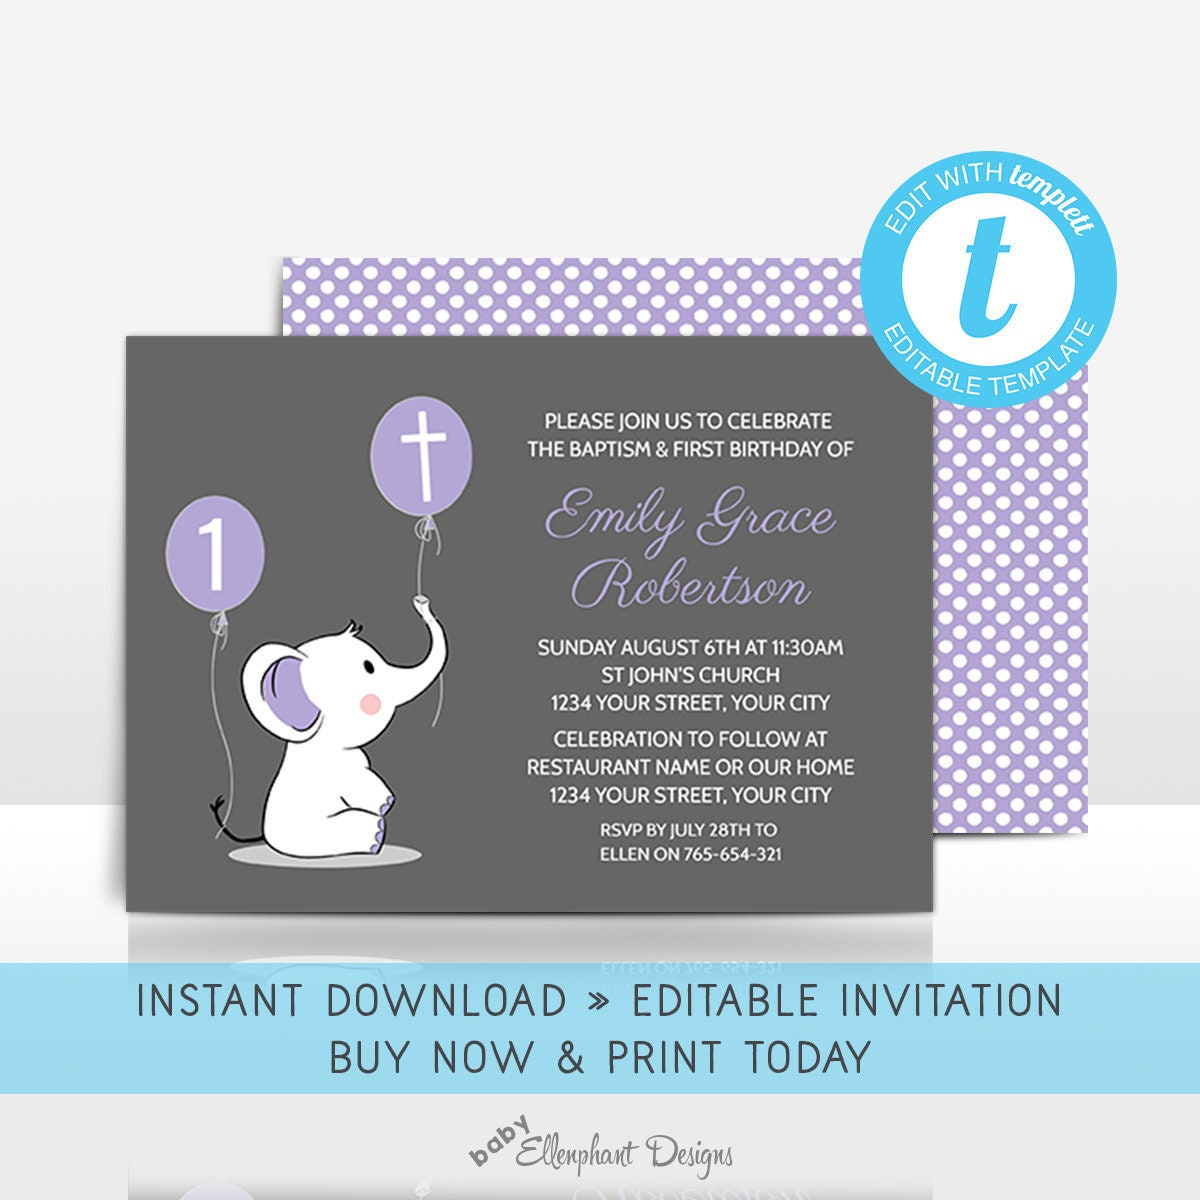 Baptism And First Birthday Invitation Editable Template